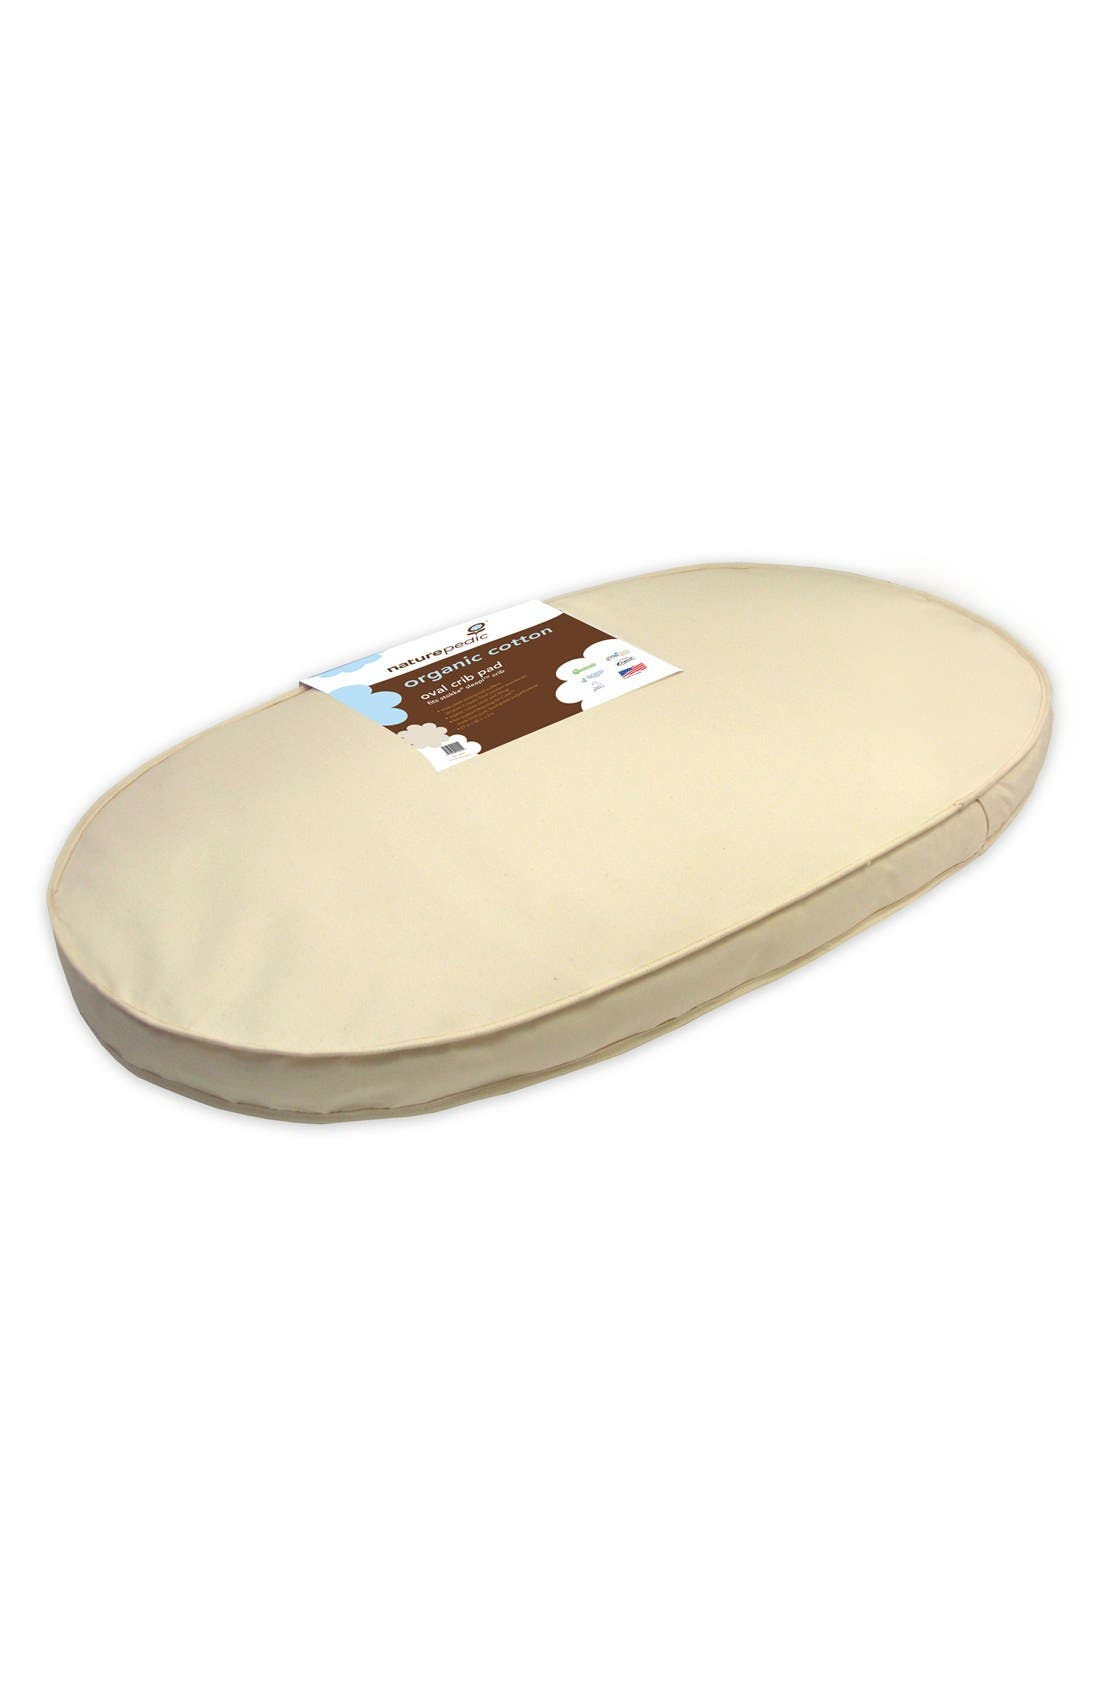 Alternate Image 1 Selected - Naturepedic Organic Cotton Oval Crib Mattress for Stokke Sleepi Crib